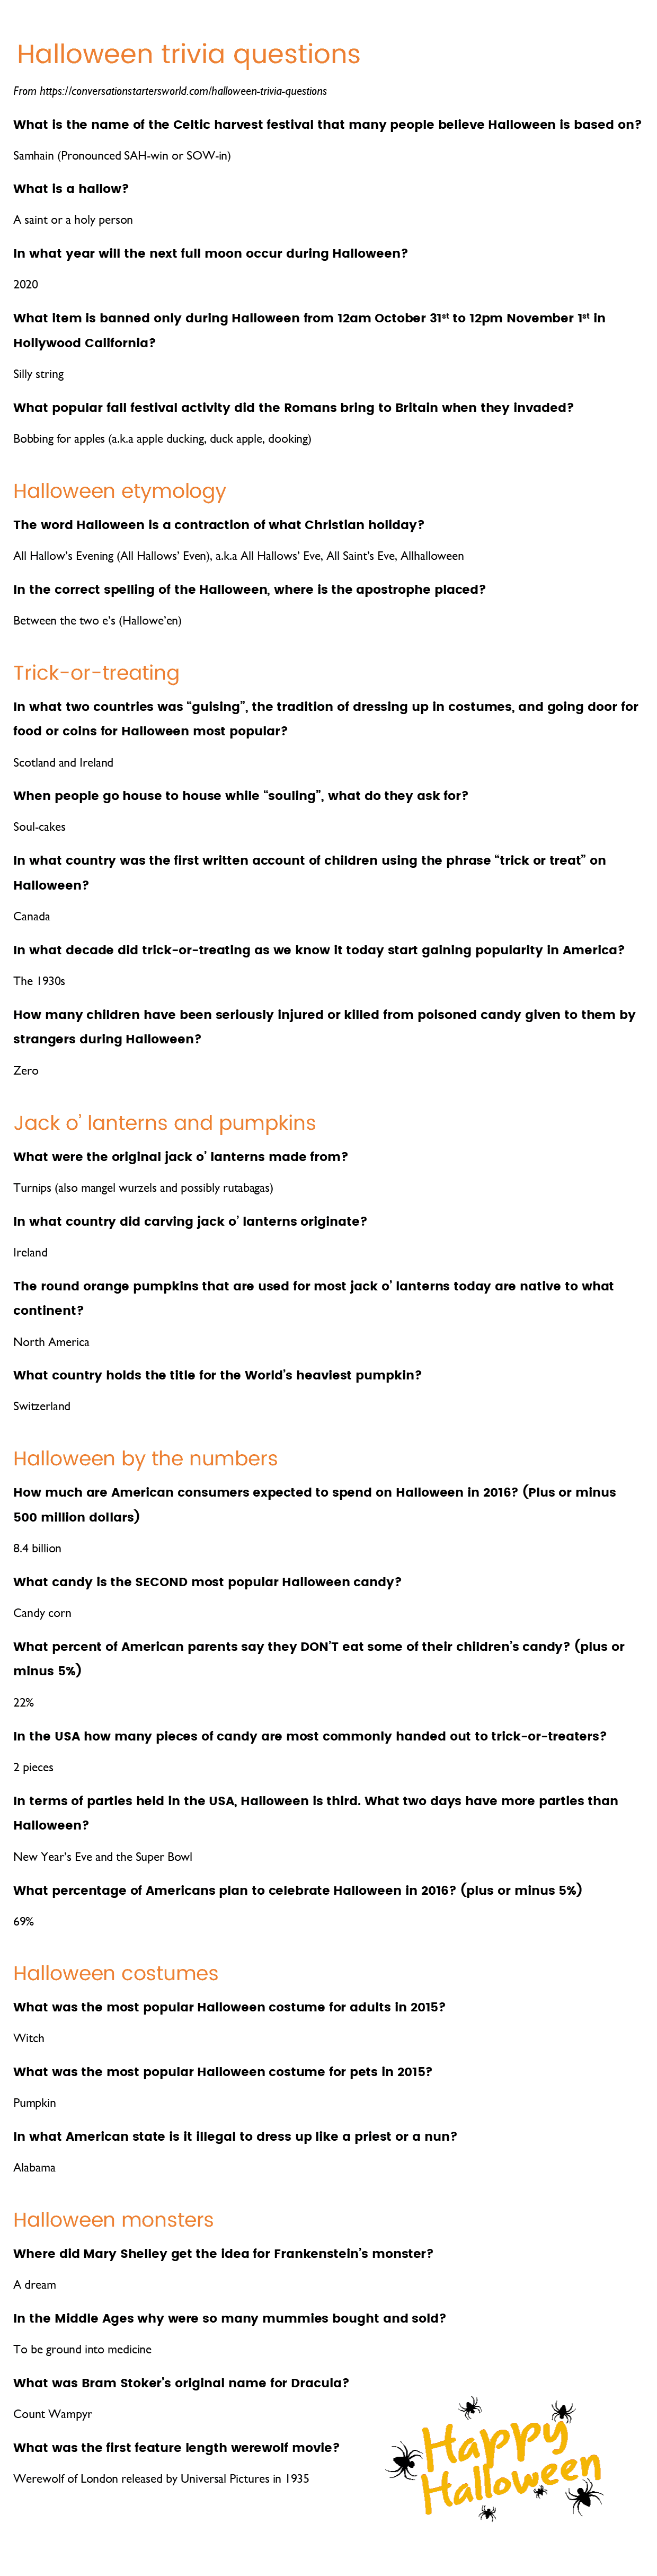 29 Challenging Halloween Trivia Questions - How Many Can You